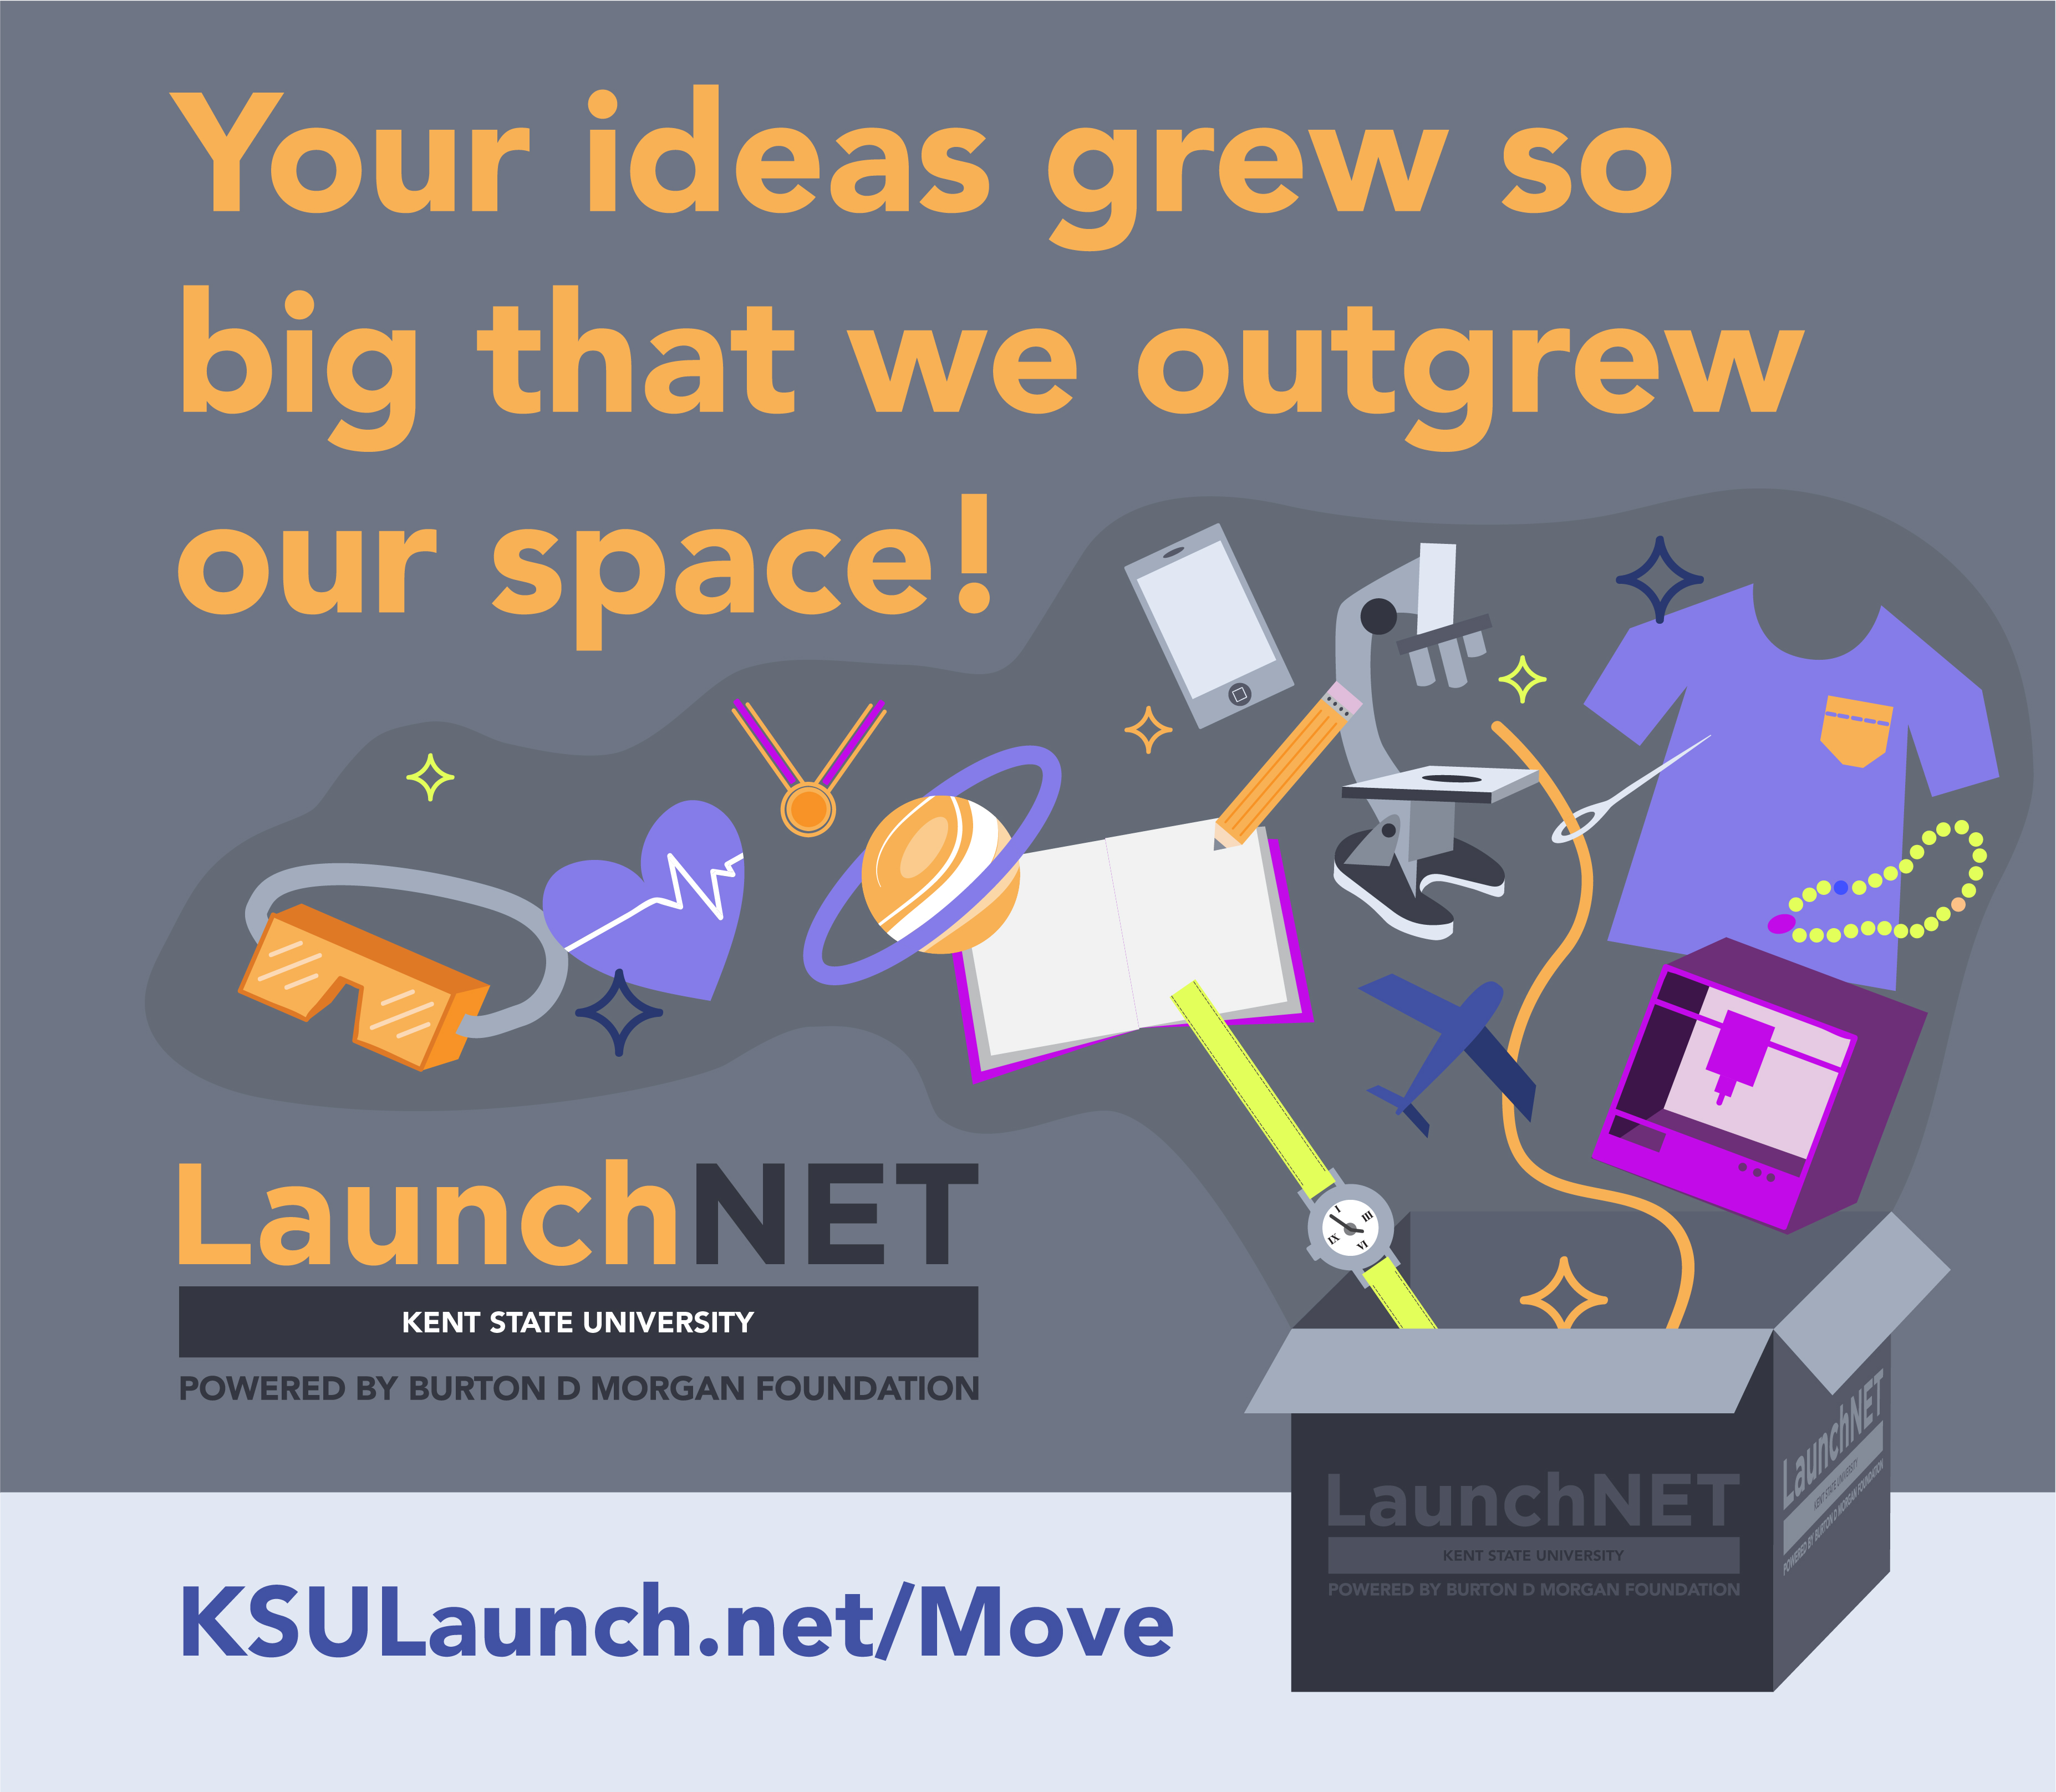 LaunchNET outgrew its office